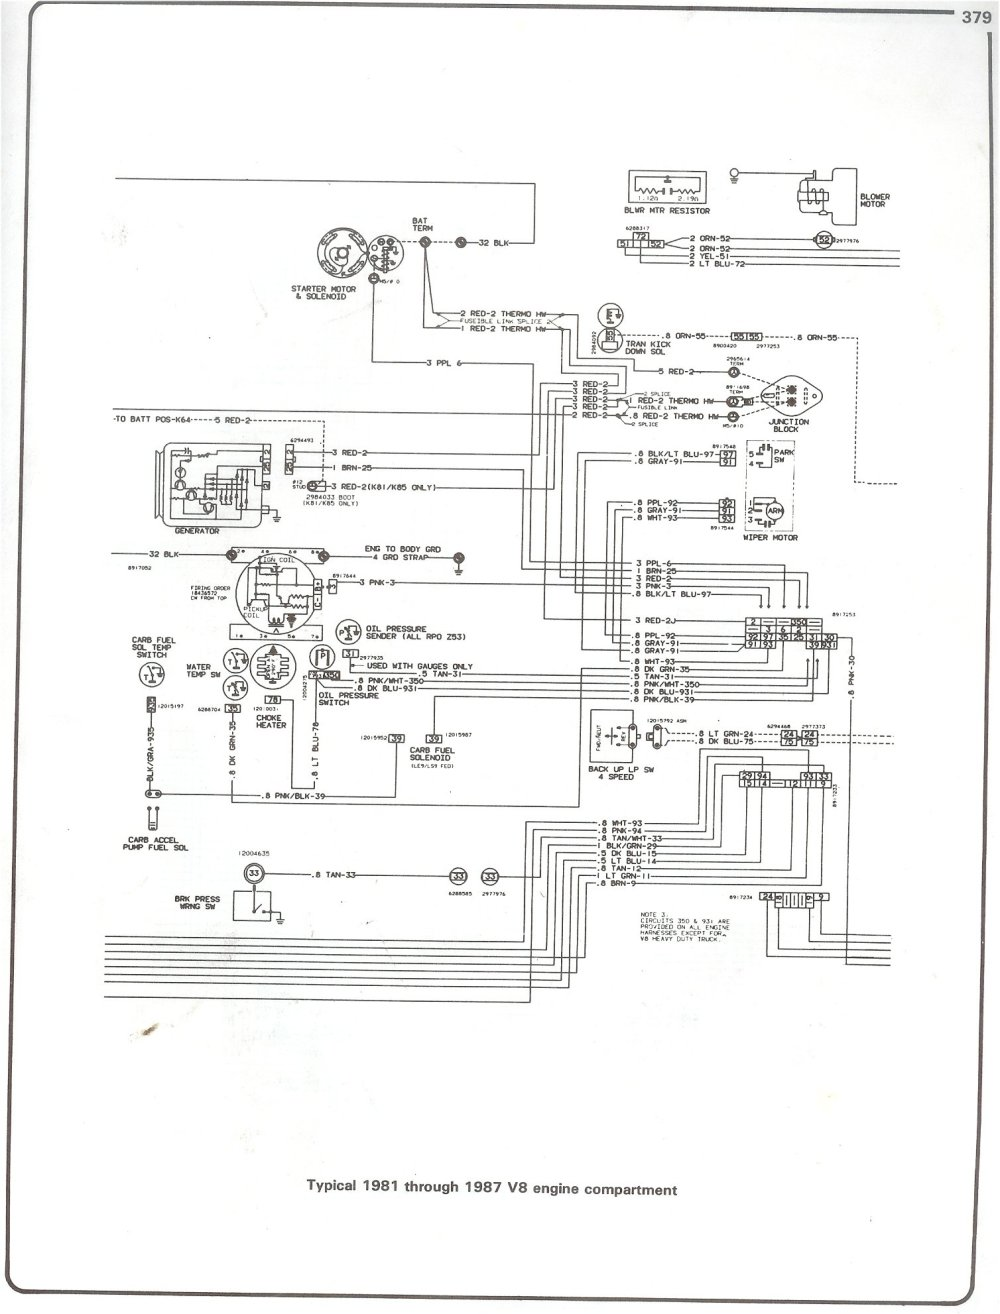 medium resolution of 1994 s10 ac wiring diagram